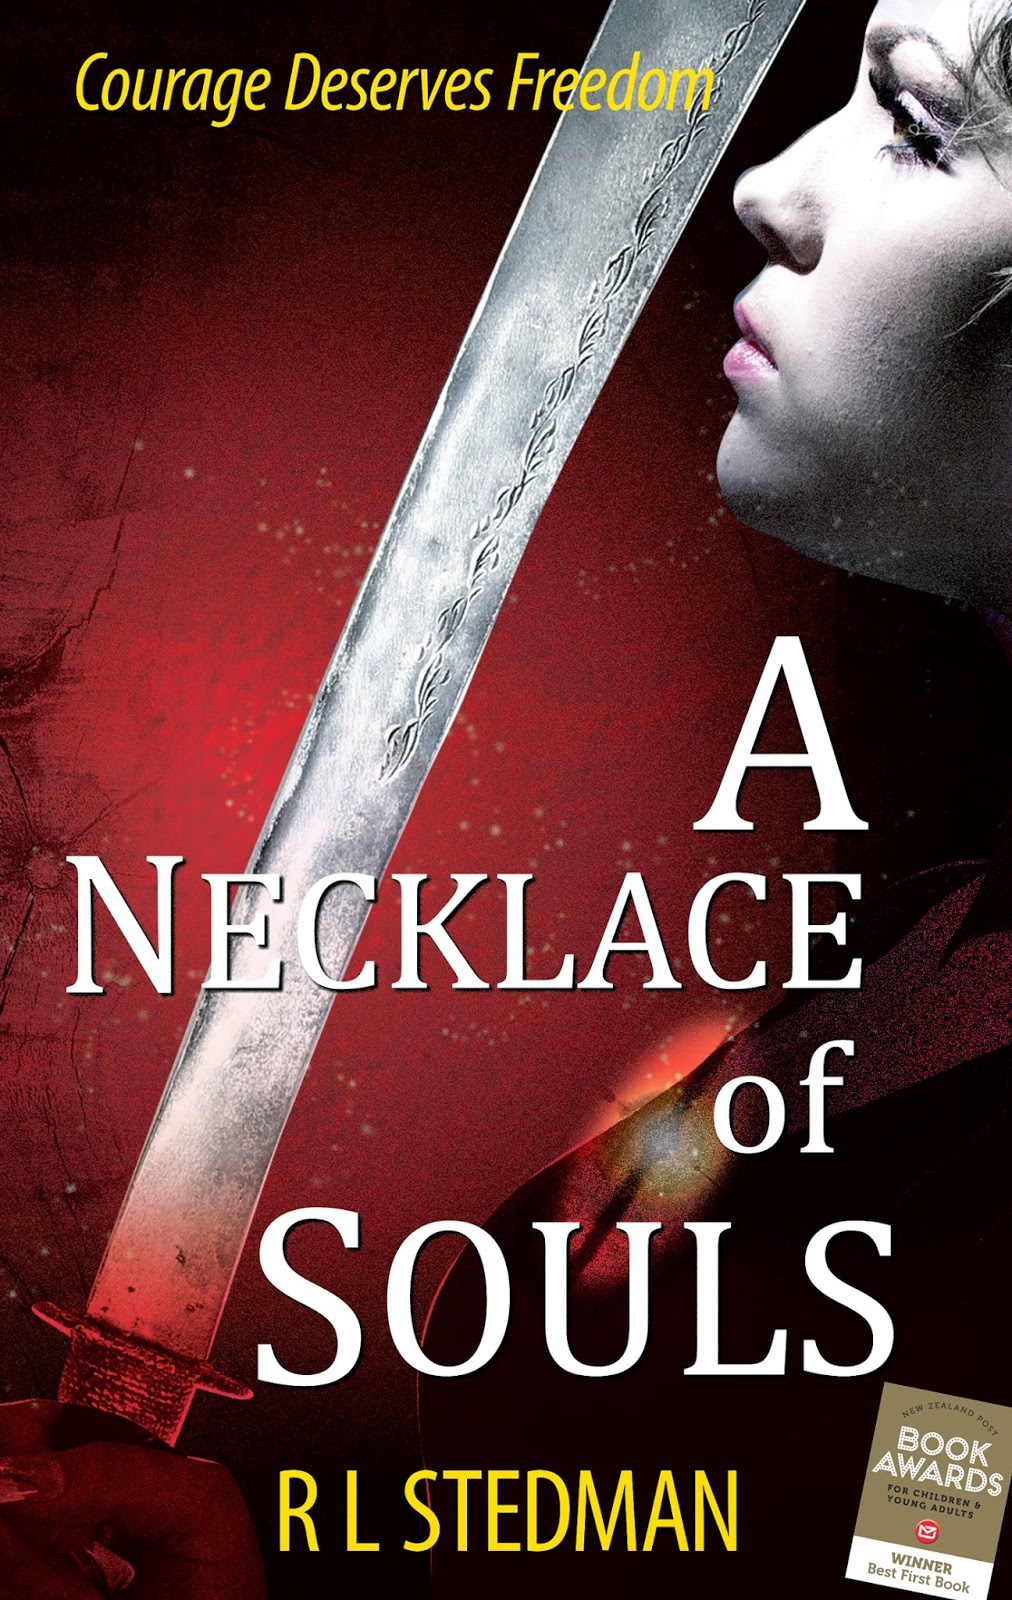 """A Necklace of Souls"" author RL Stedman, cover designer: Kura Carpenter"